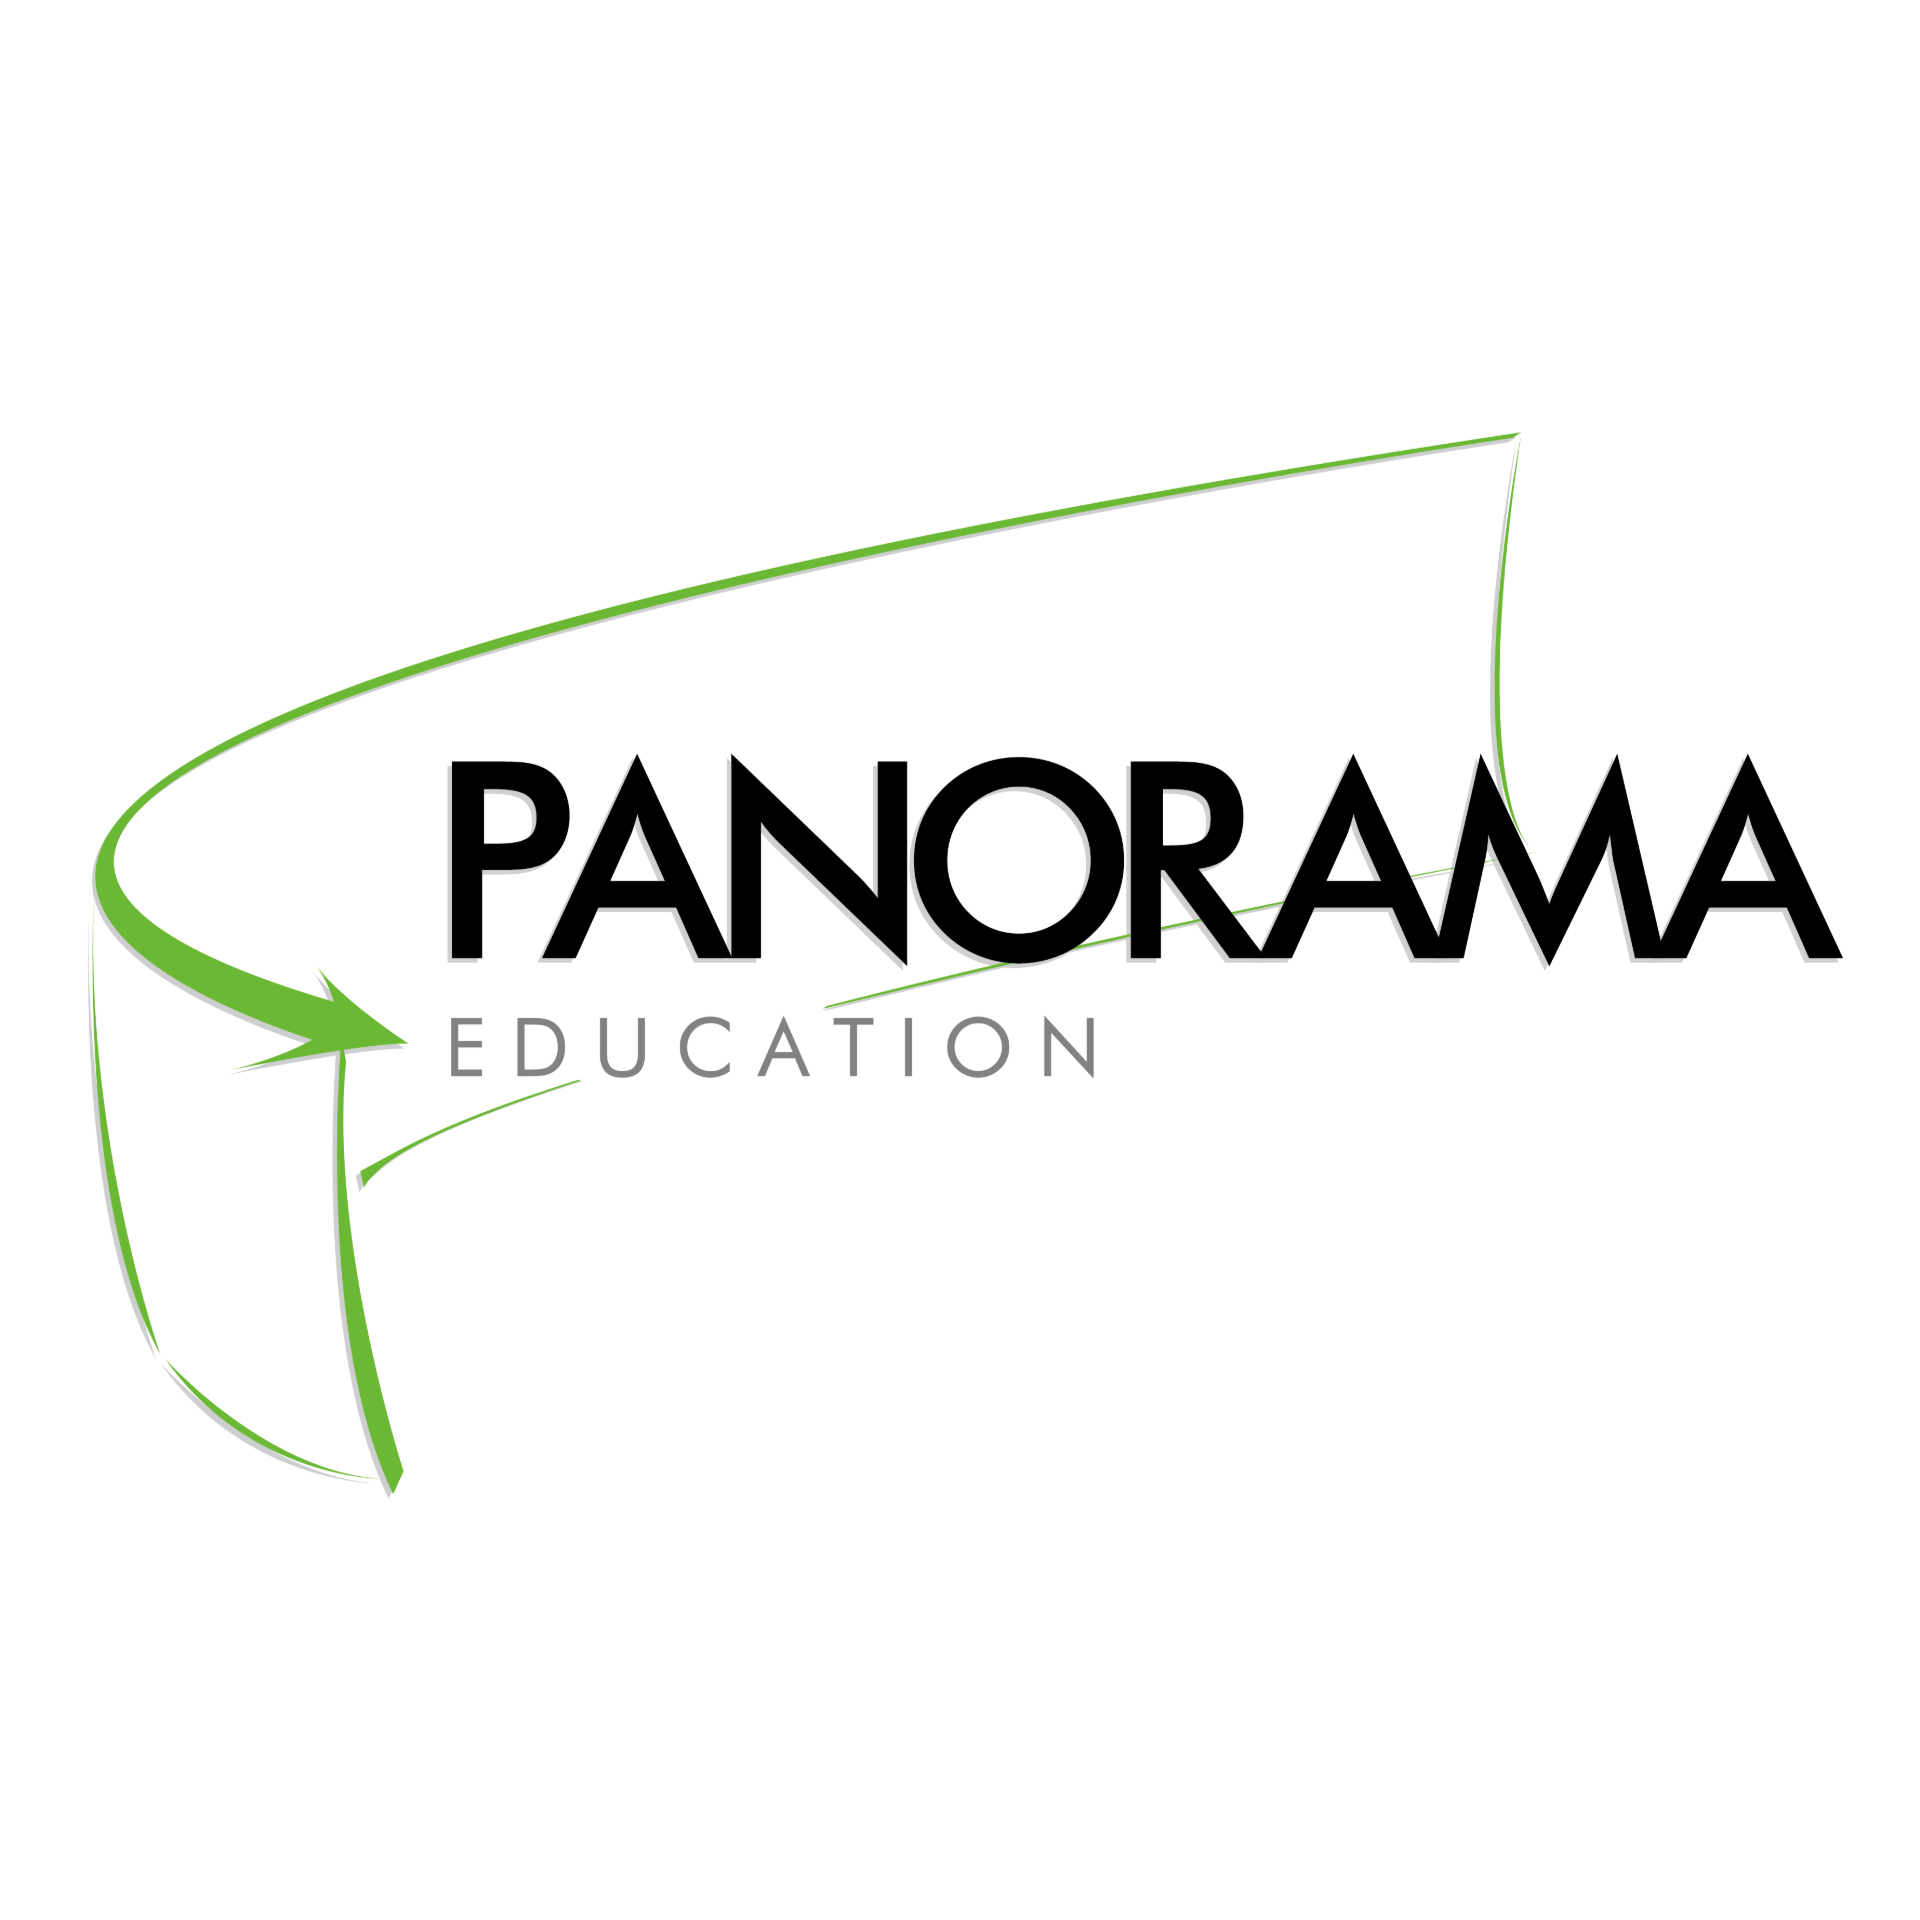 Panorama Education   Panorama Education helps schools improve teaching, increase student and parent engagement, attract and retain great teachers, and foster a positive campus culture by collecting and acting on feedback from students, parents, teachers, and staff.